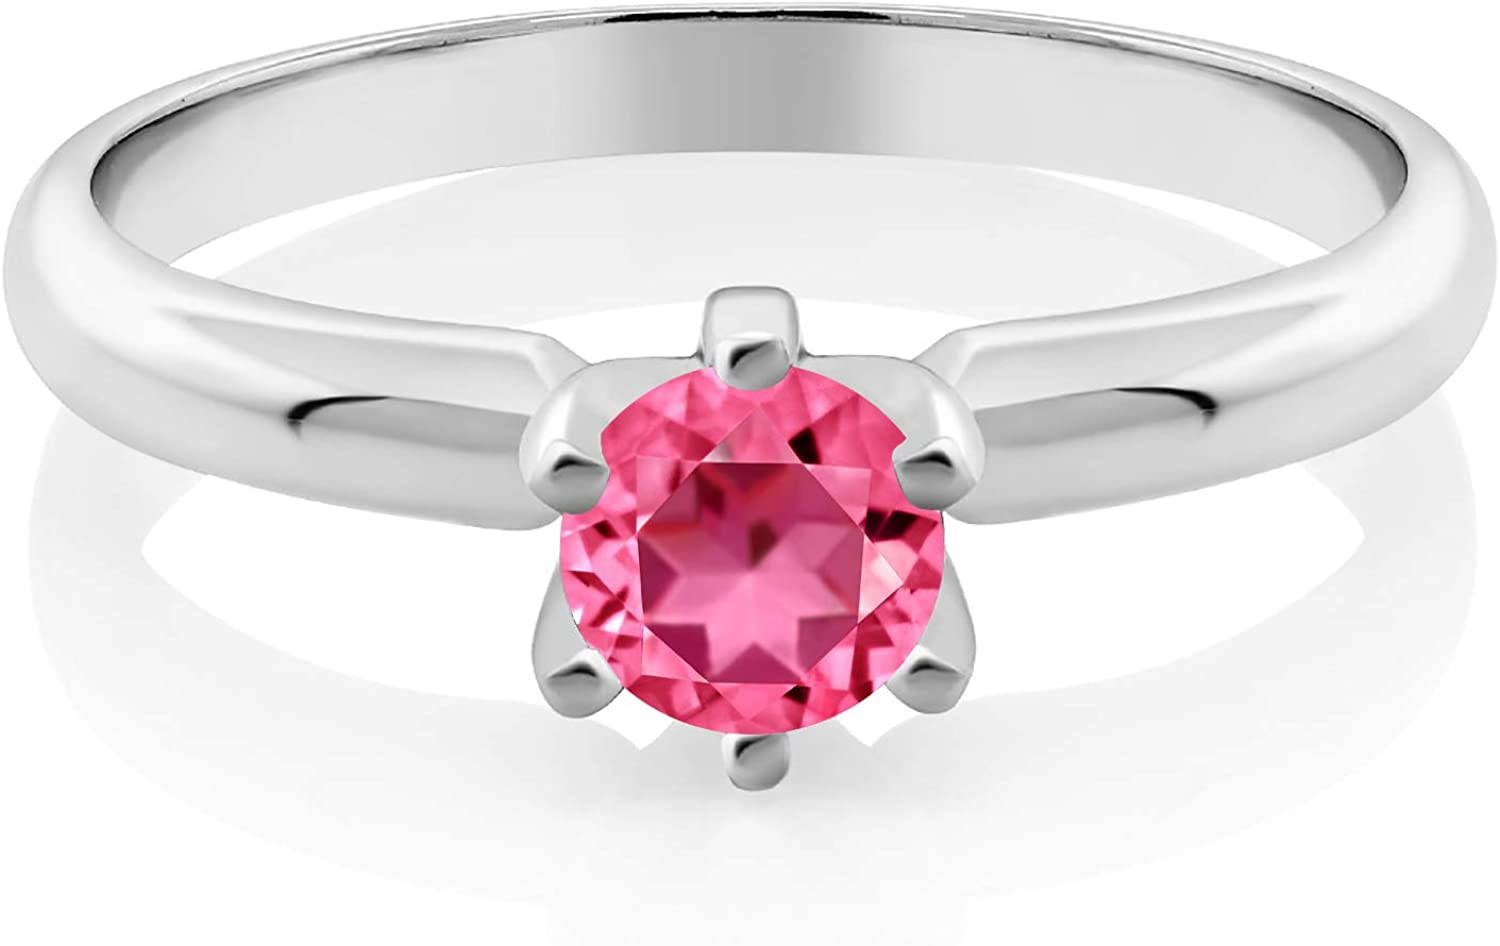 Gem At the price of surprise Stone King 925 Sterling Max 88% OFF Silver Set wi Ring 6-Prong Solitaire